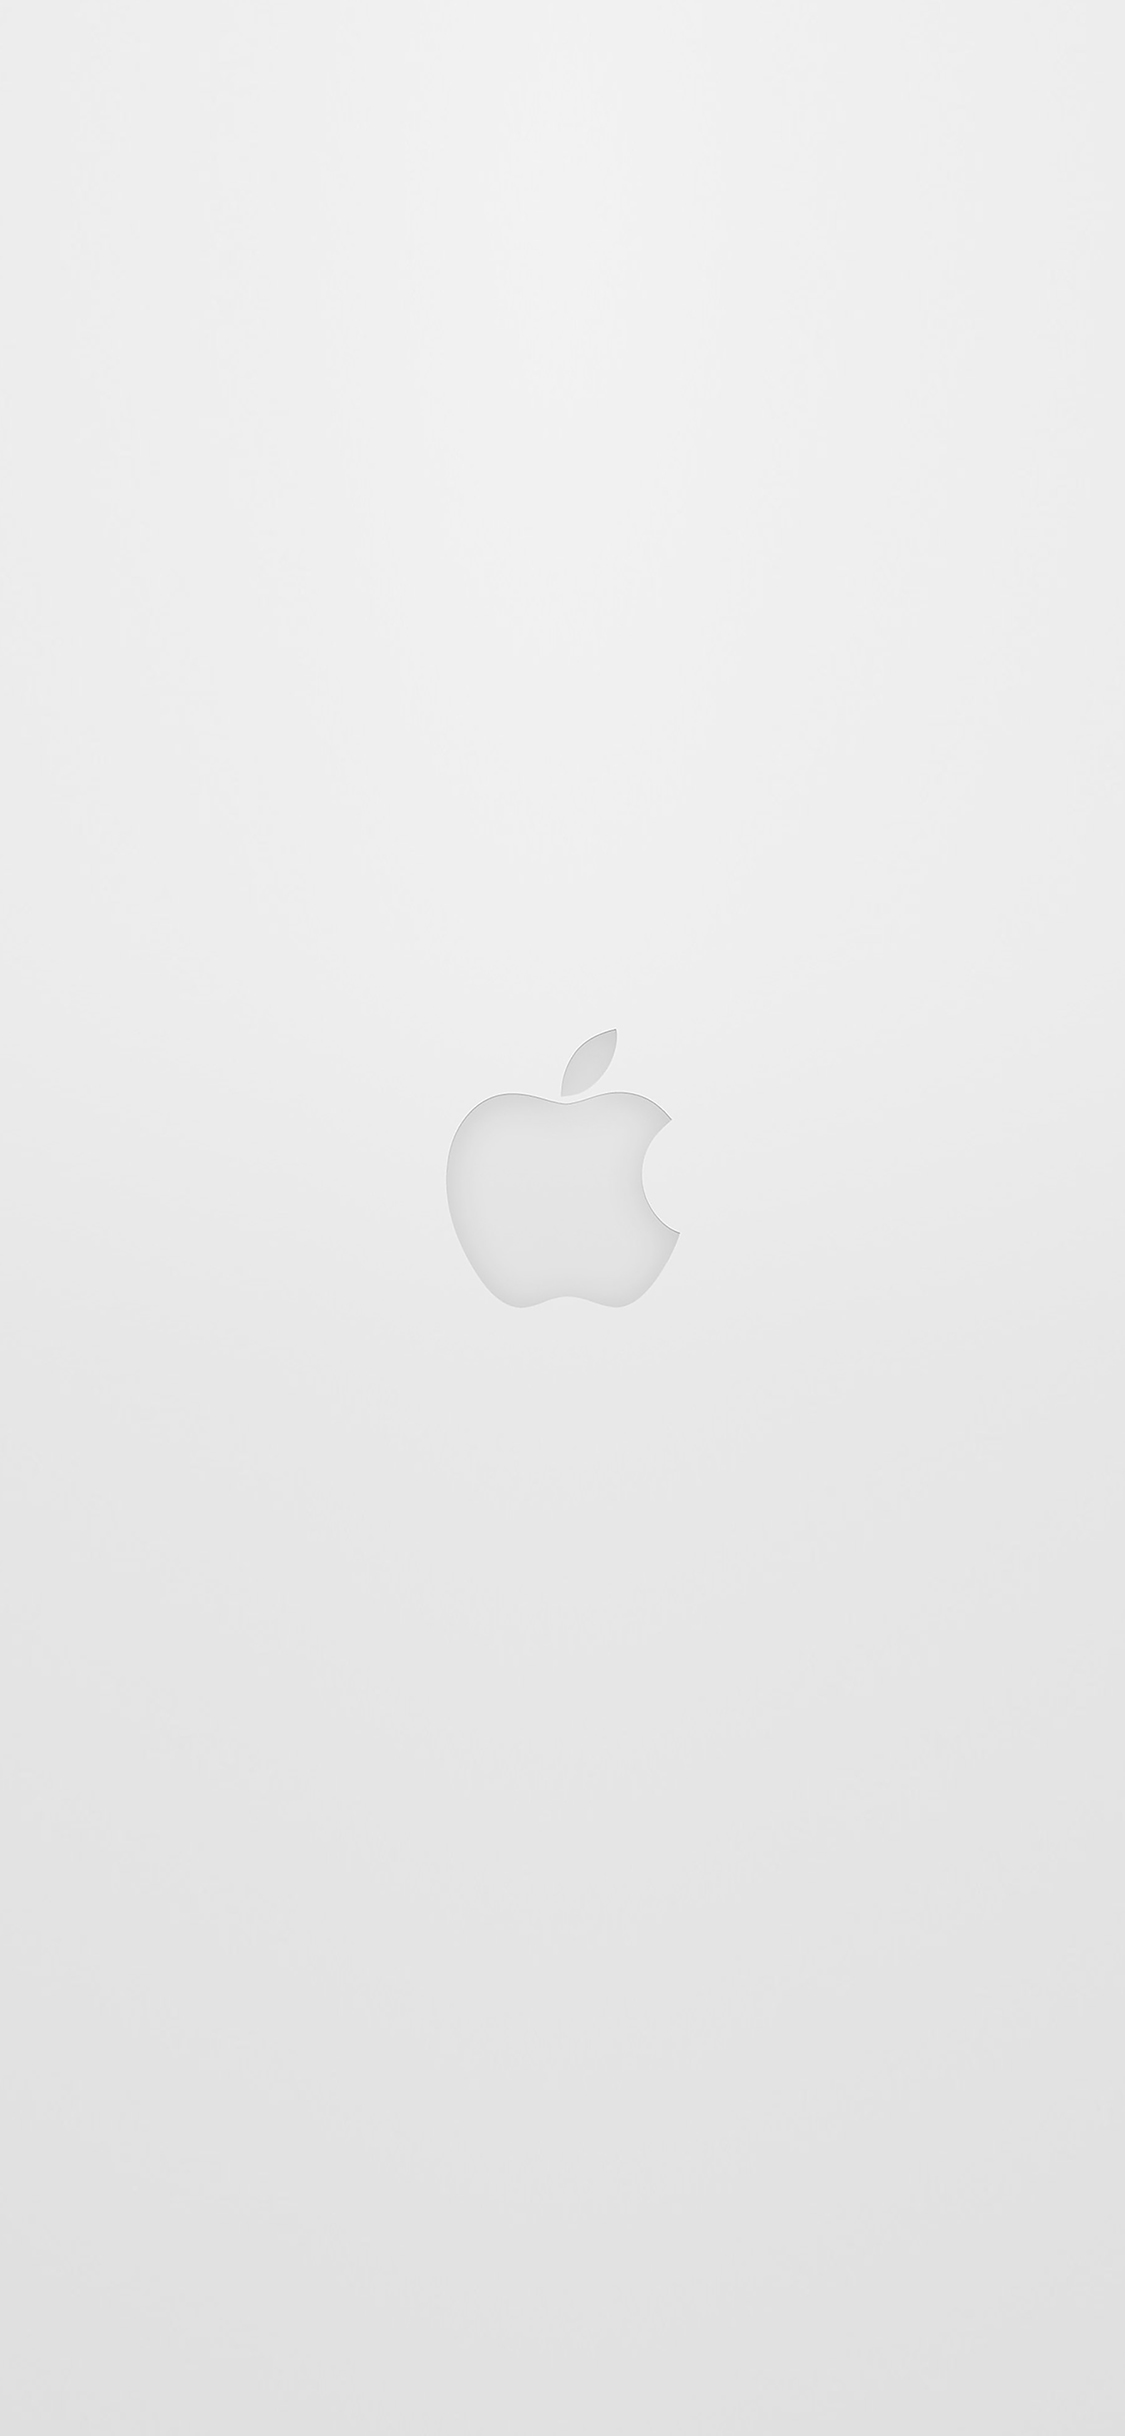 iPhoneXpapers.com-Apple-iPhone-wallpaper-ad88-apple-logo-white-ios8-iphone6